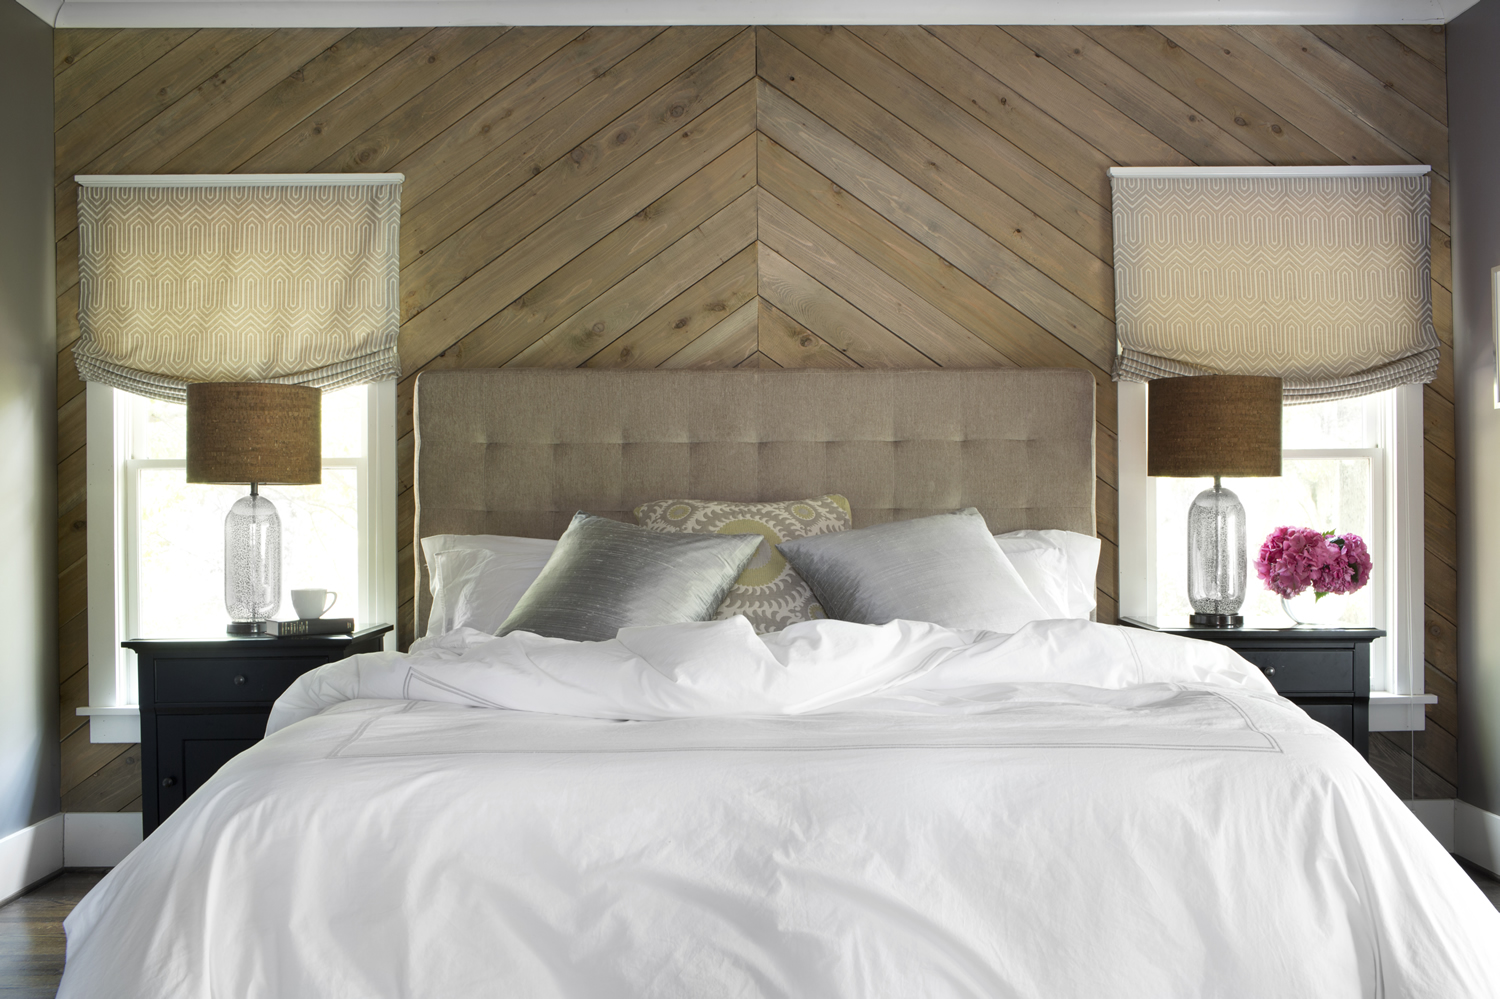 Wood Feature Wall Tips | JLC Online | Wood, Walls, Interiors